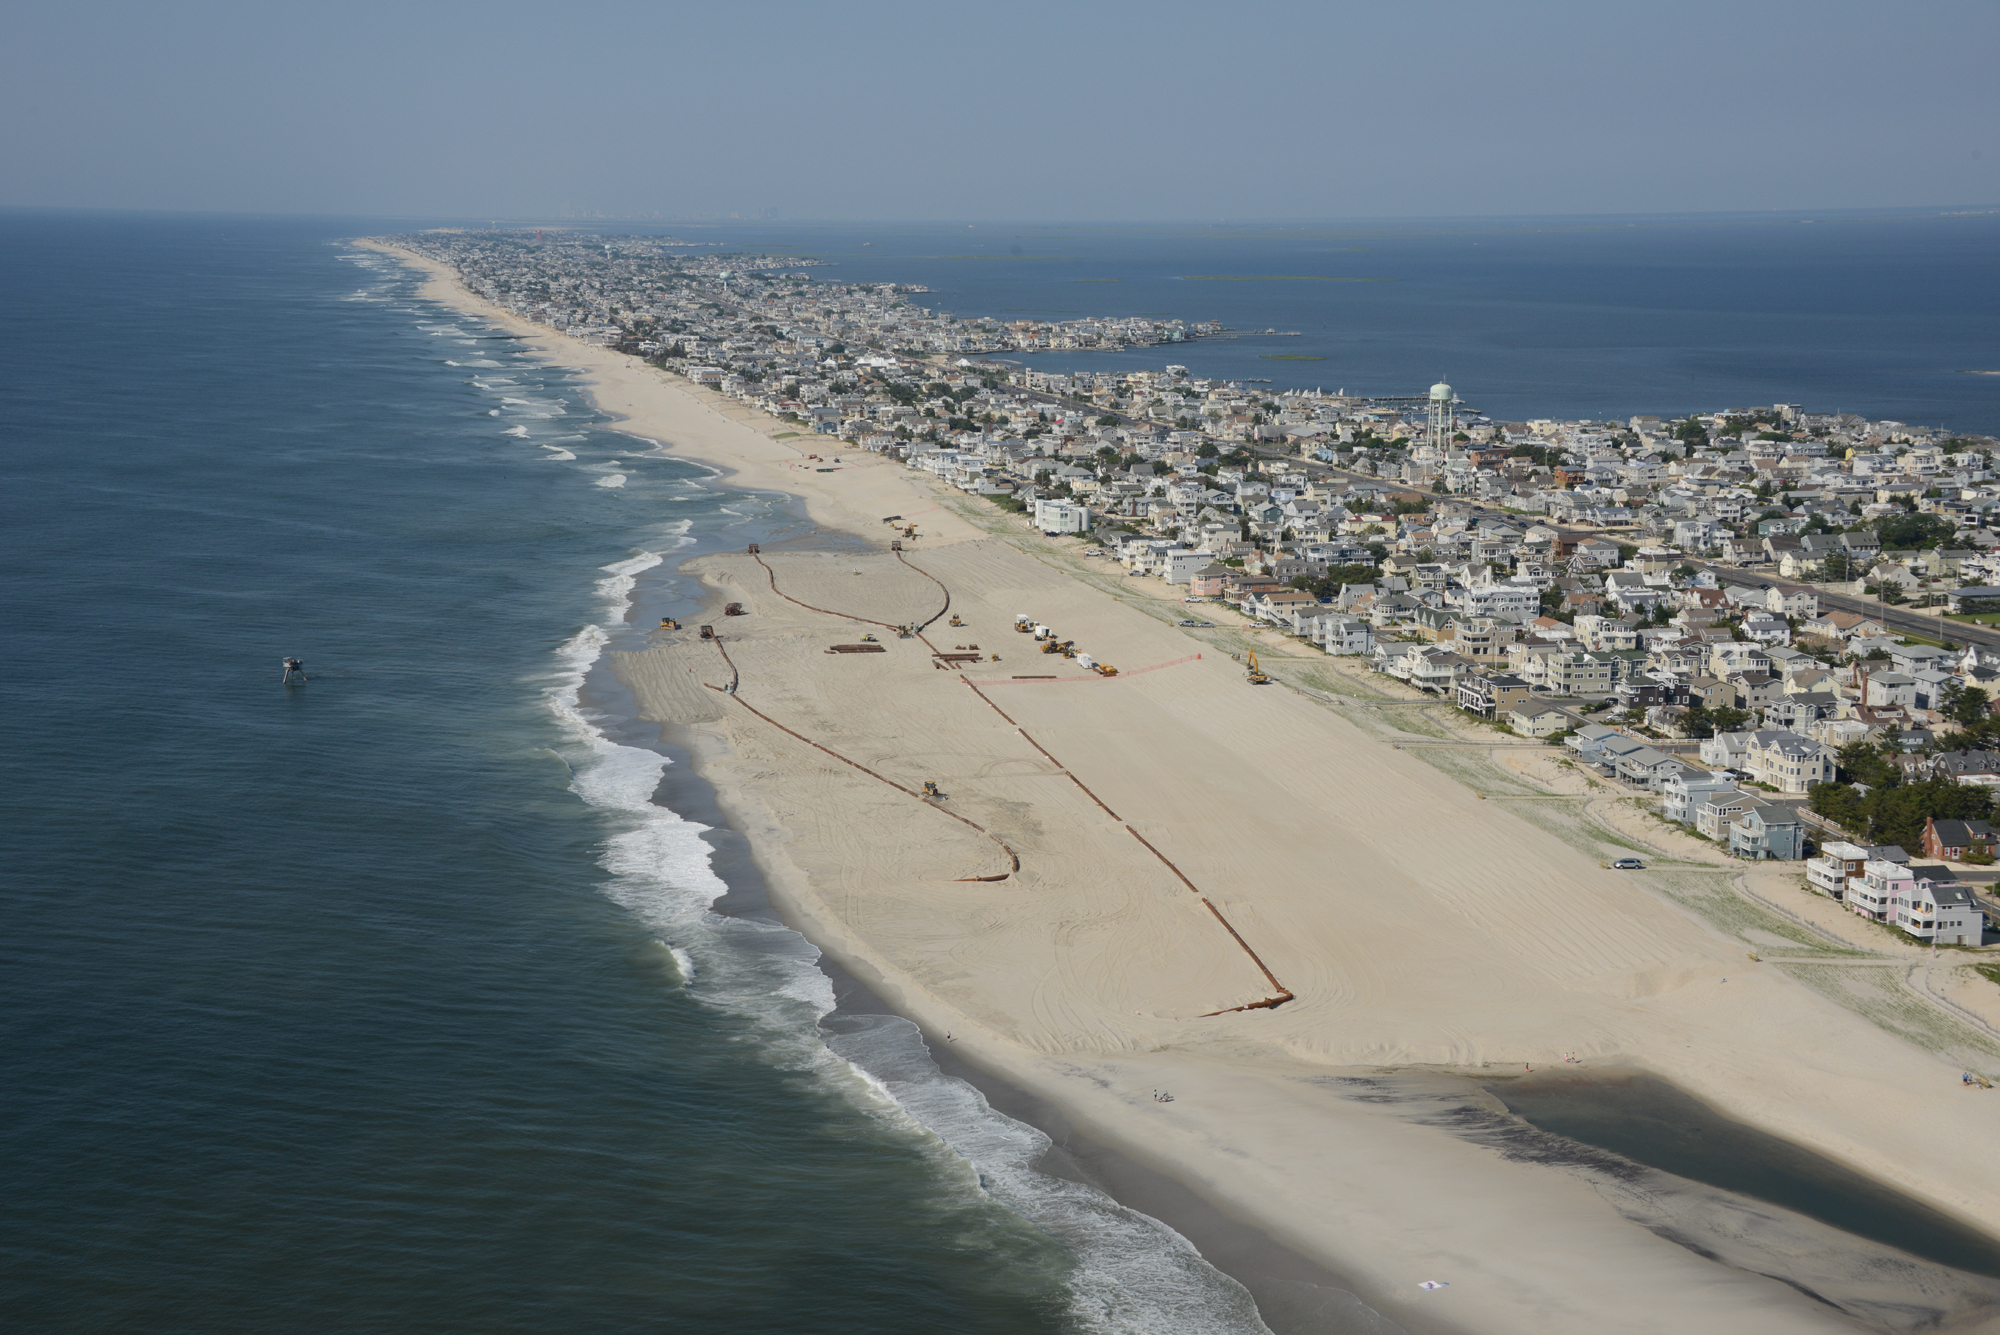 A beach replenishment project in the Brant Beach section of Long Beach Township. A similar project is being planned for Ocean County's northern barrier island. (Photo: U.S. Army Corps of Engineers)